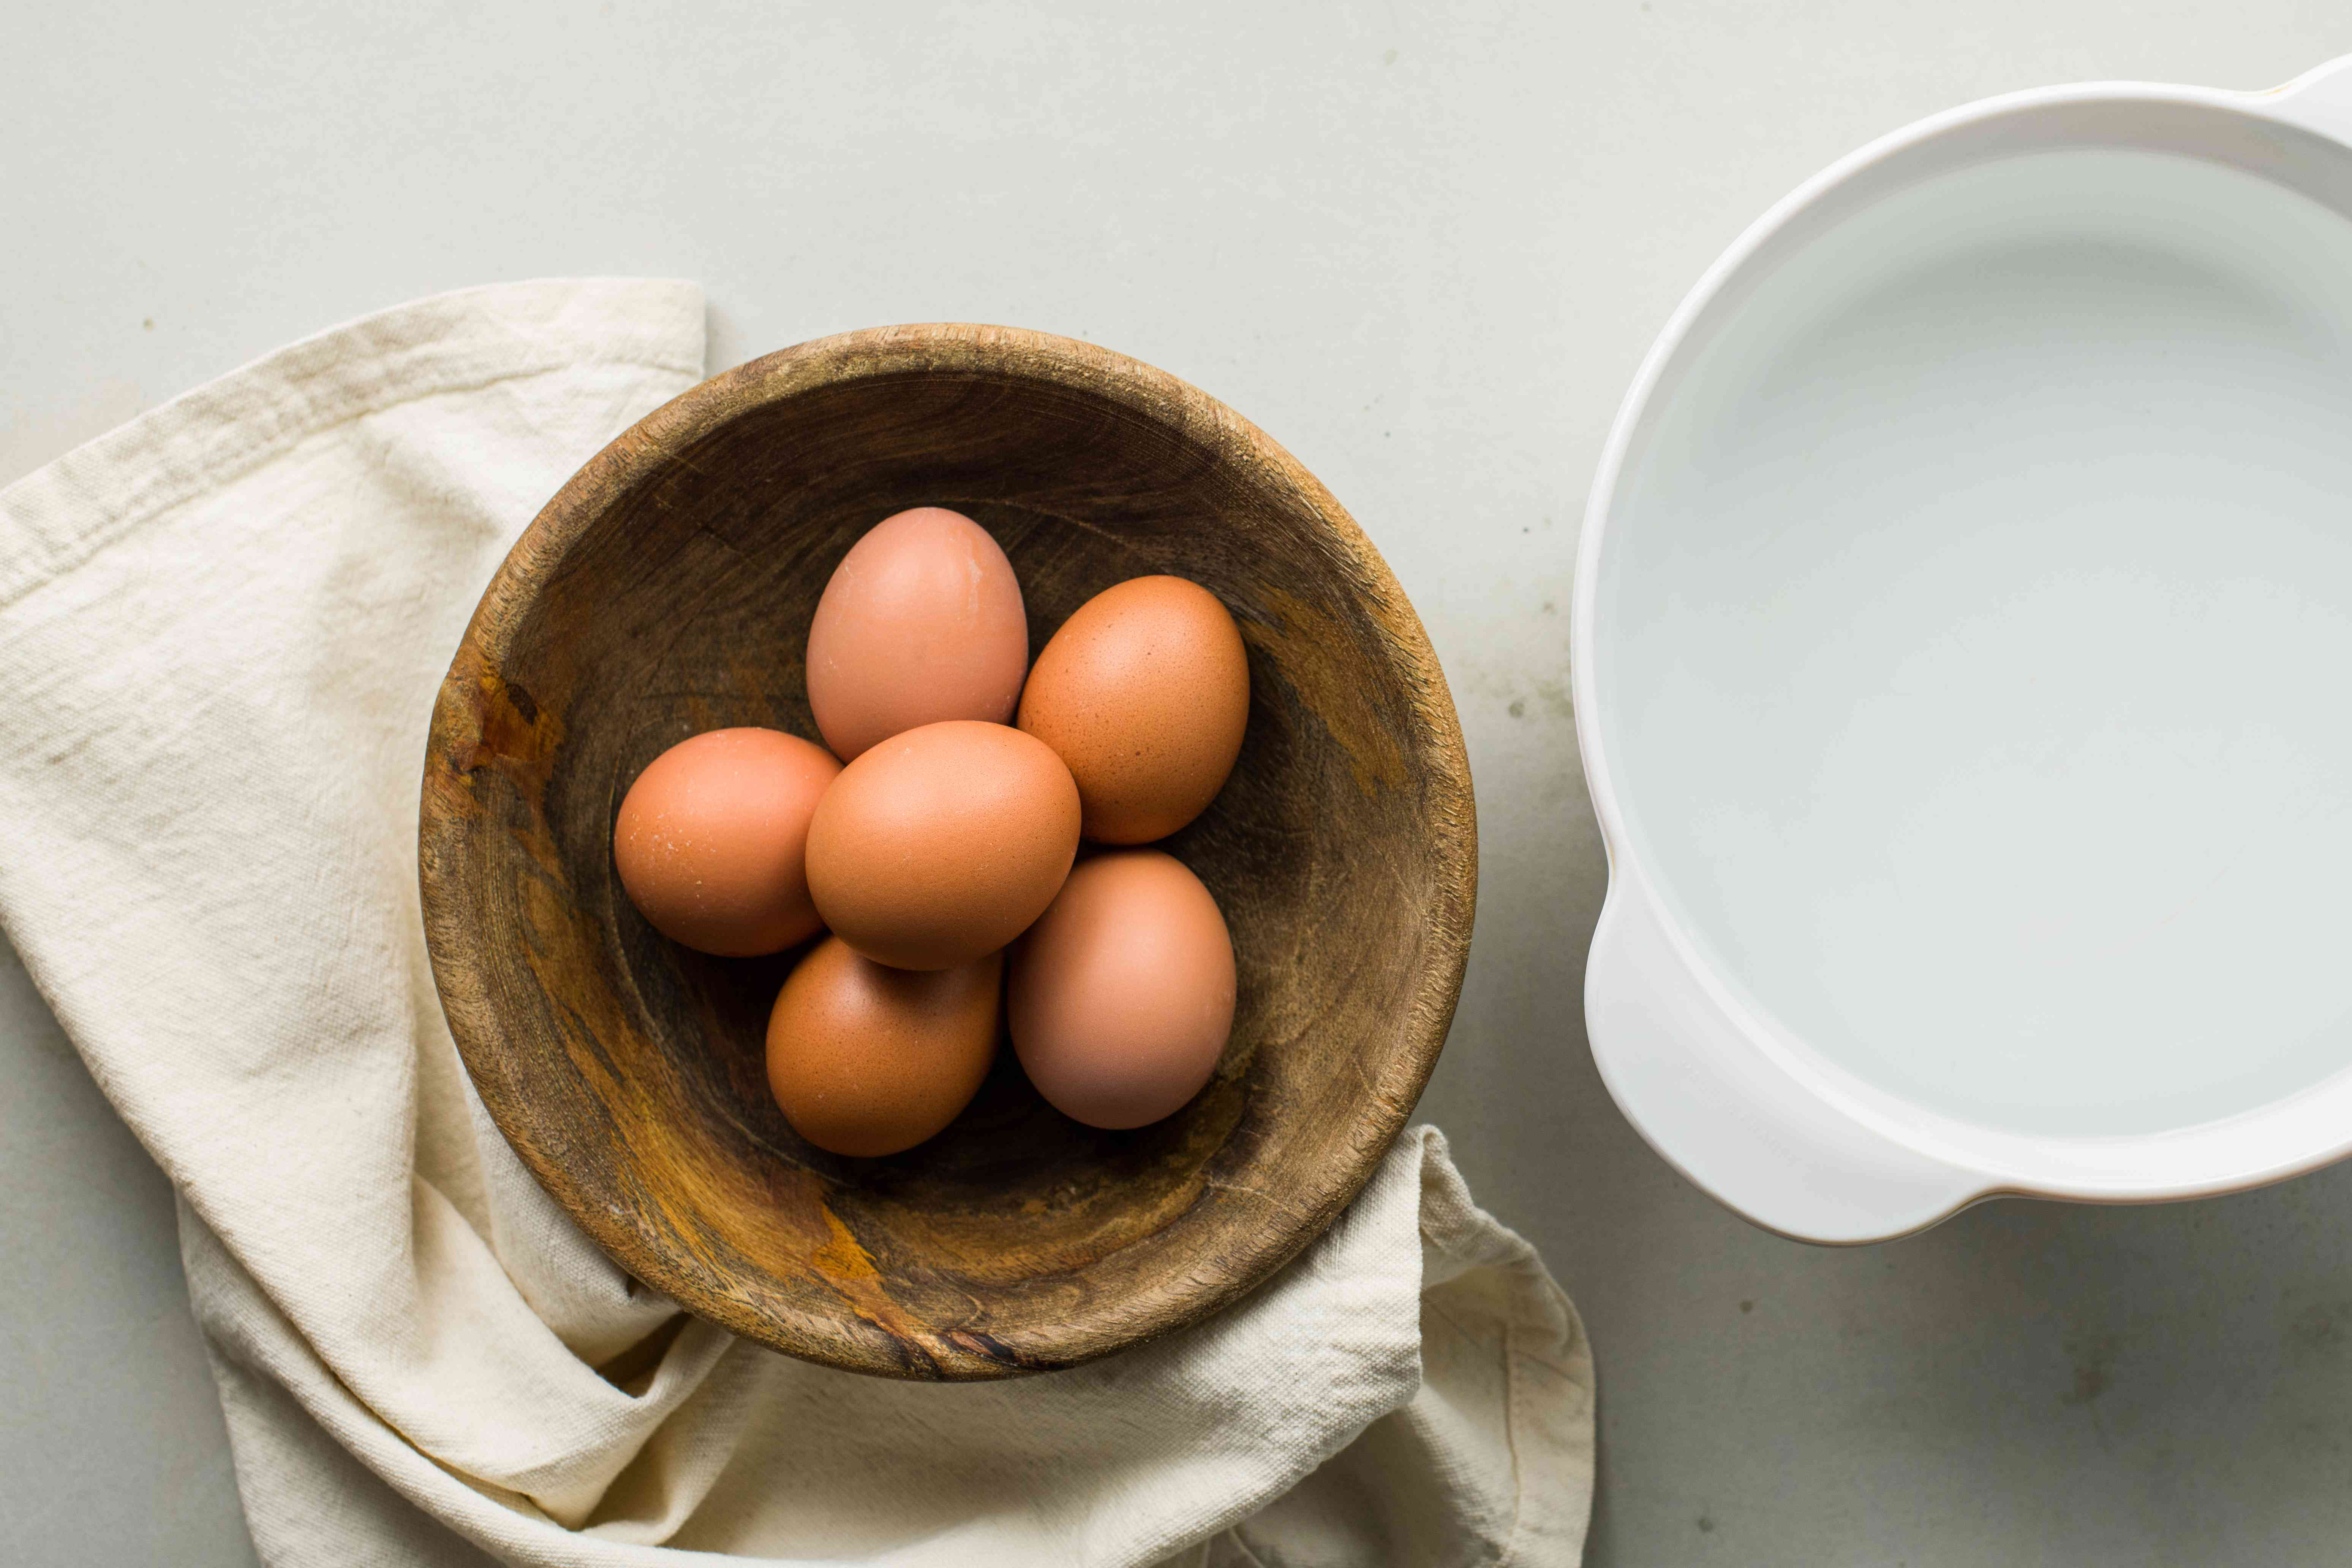 Eggs and water